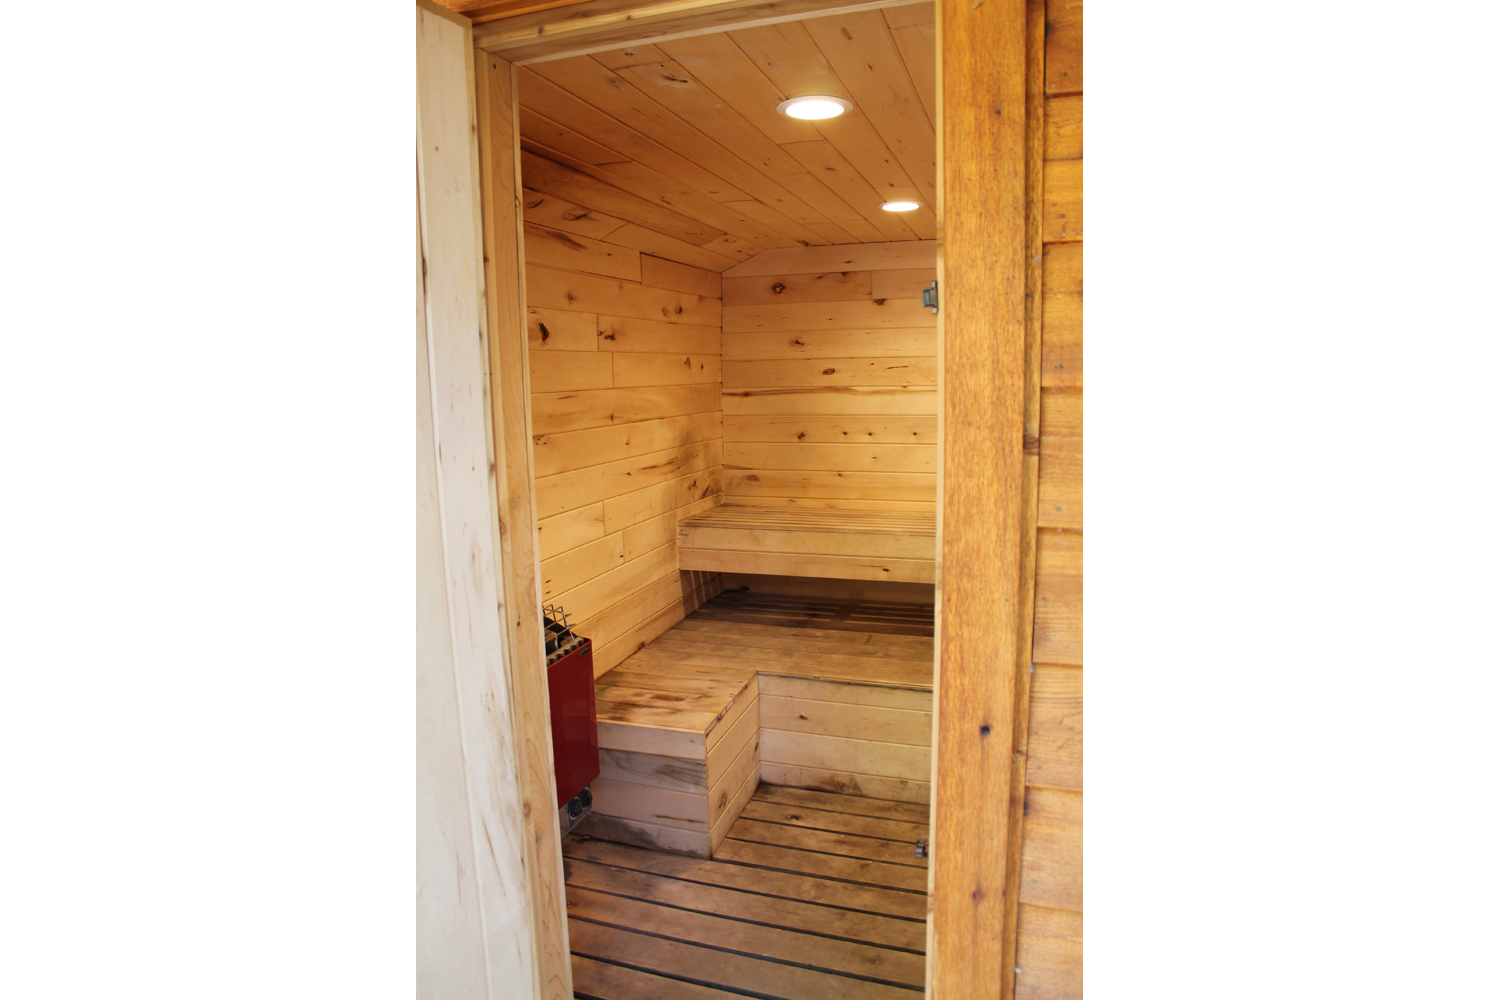 Relax in the Sauna at Broadwater Lodge